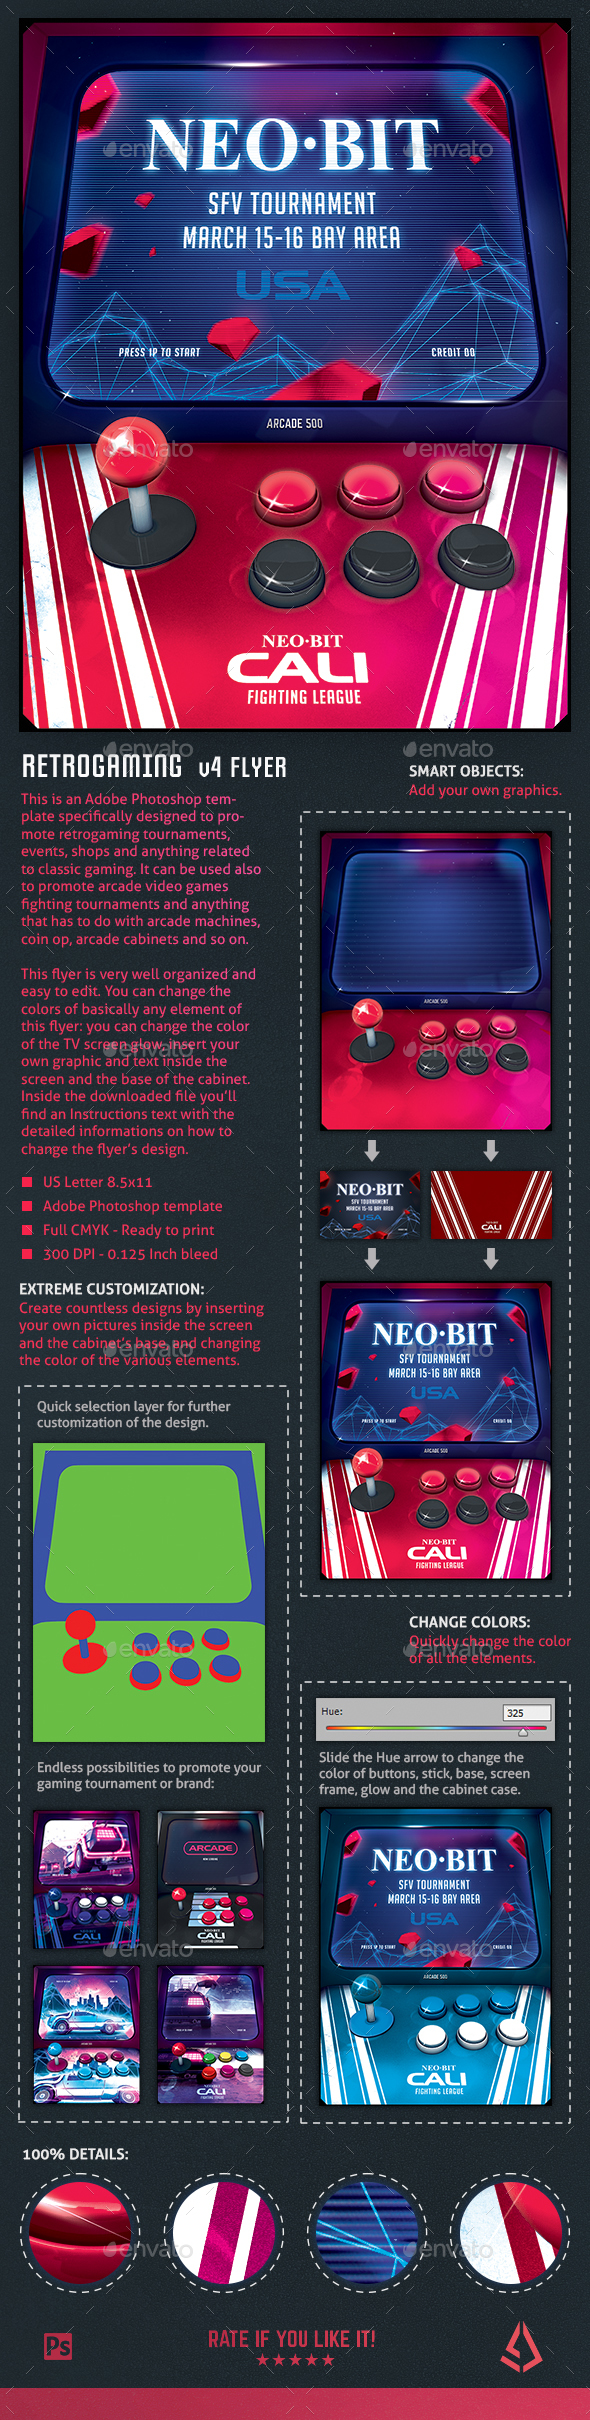 Retro Gaming Flyer IV - Arcade Cabinet Mockup Template - Miscellaneous Events